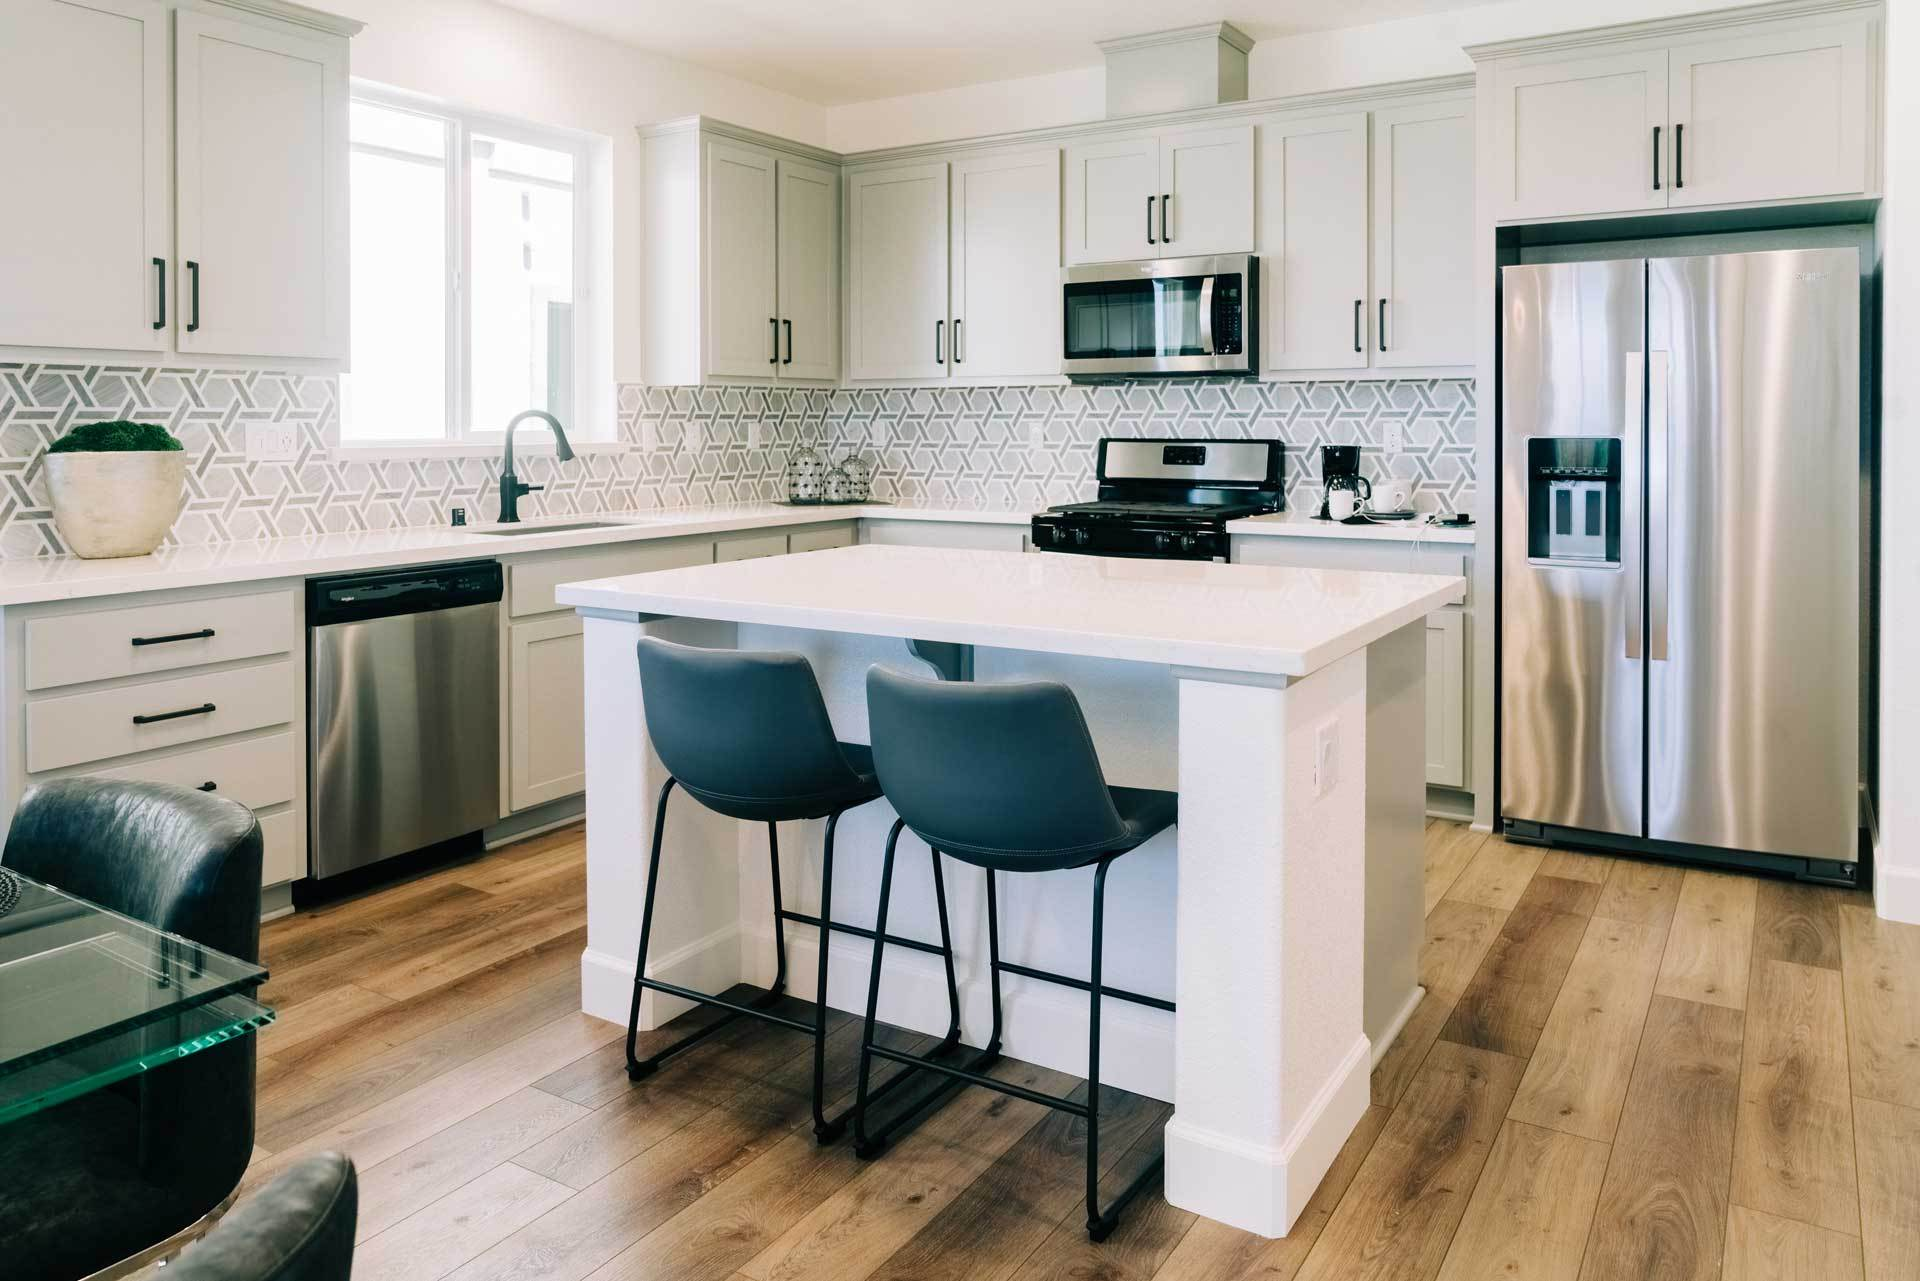 Kitchen featured in the Aiden By Seeno Homes in Oakland-Alameda, CA